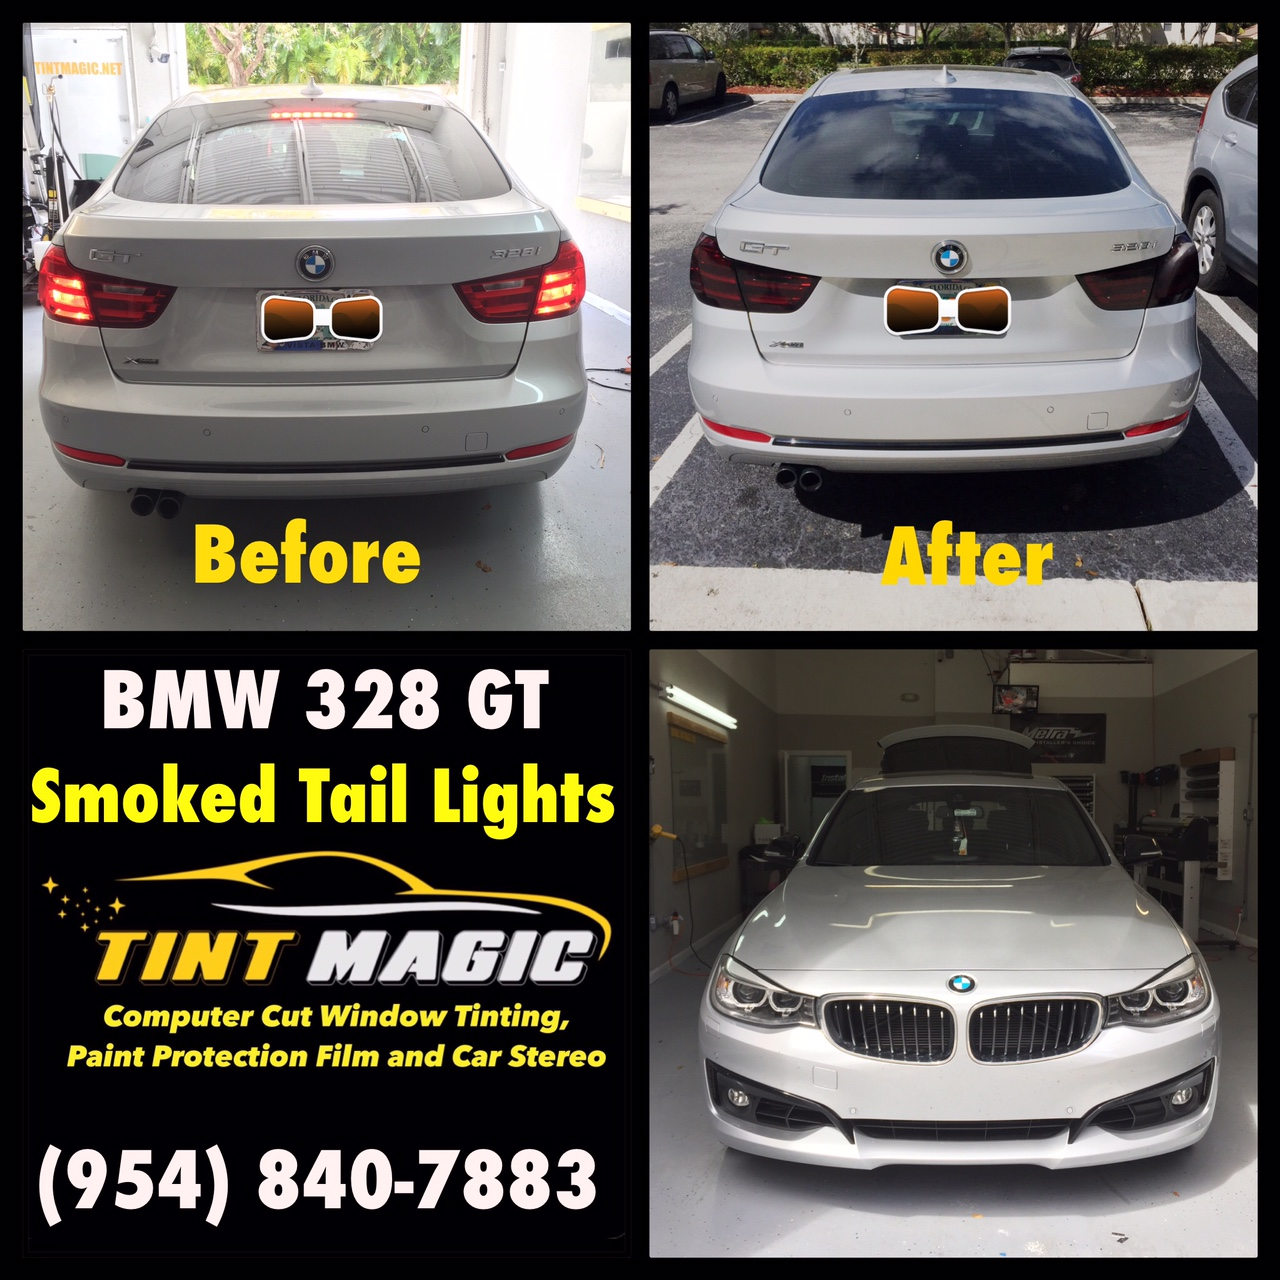 Coconut Creek Bmw: BMW 328GT At Tint Magic Window Tinting Smoked Tail Lights